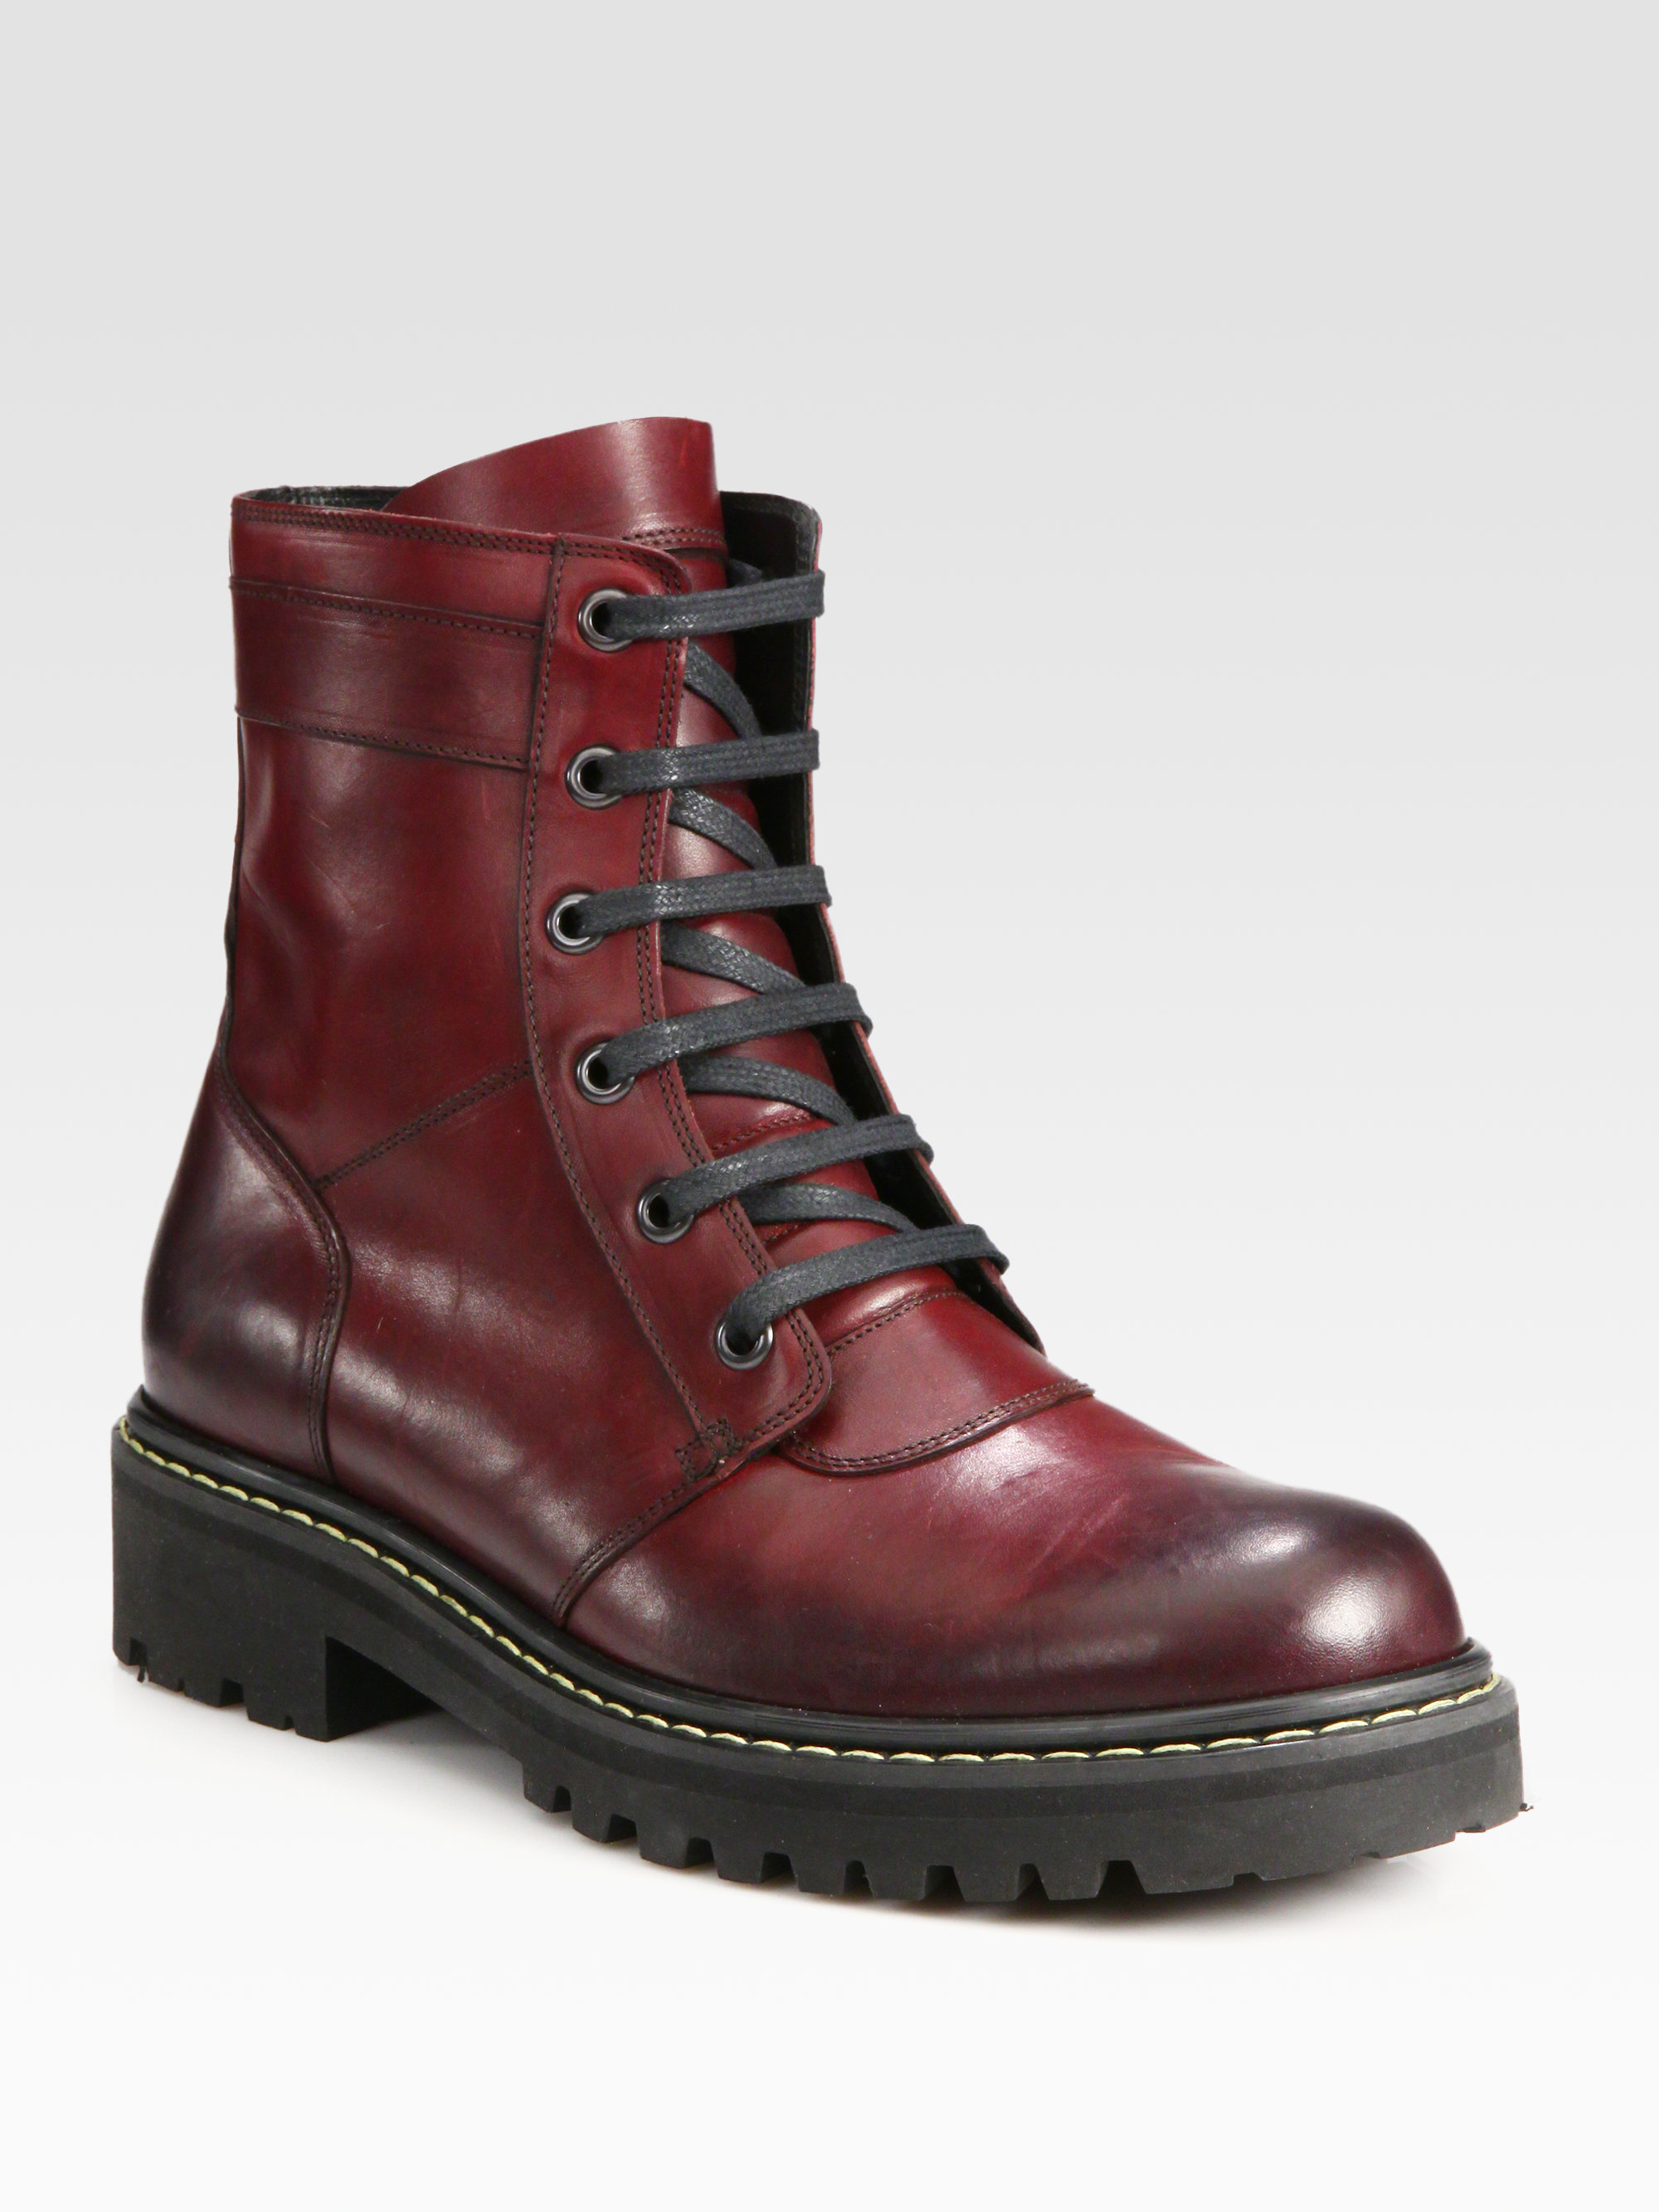 Marc jacobs Leather Boot in Red for Men | Lyst